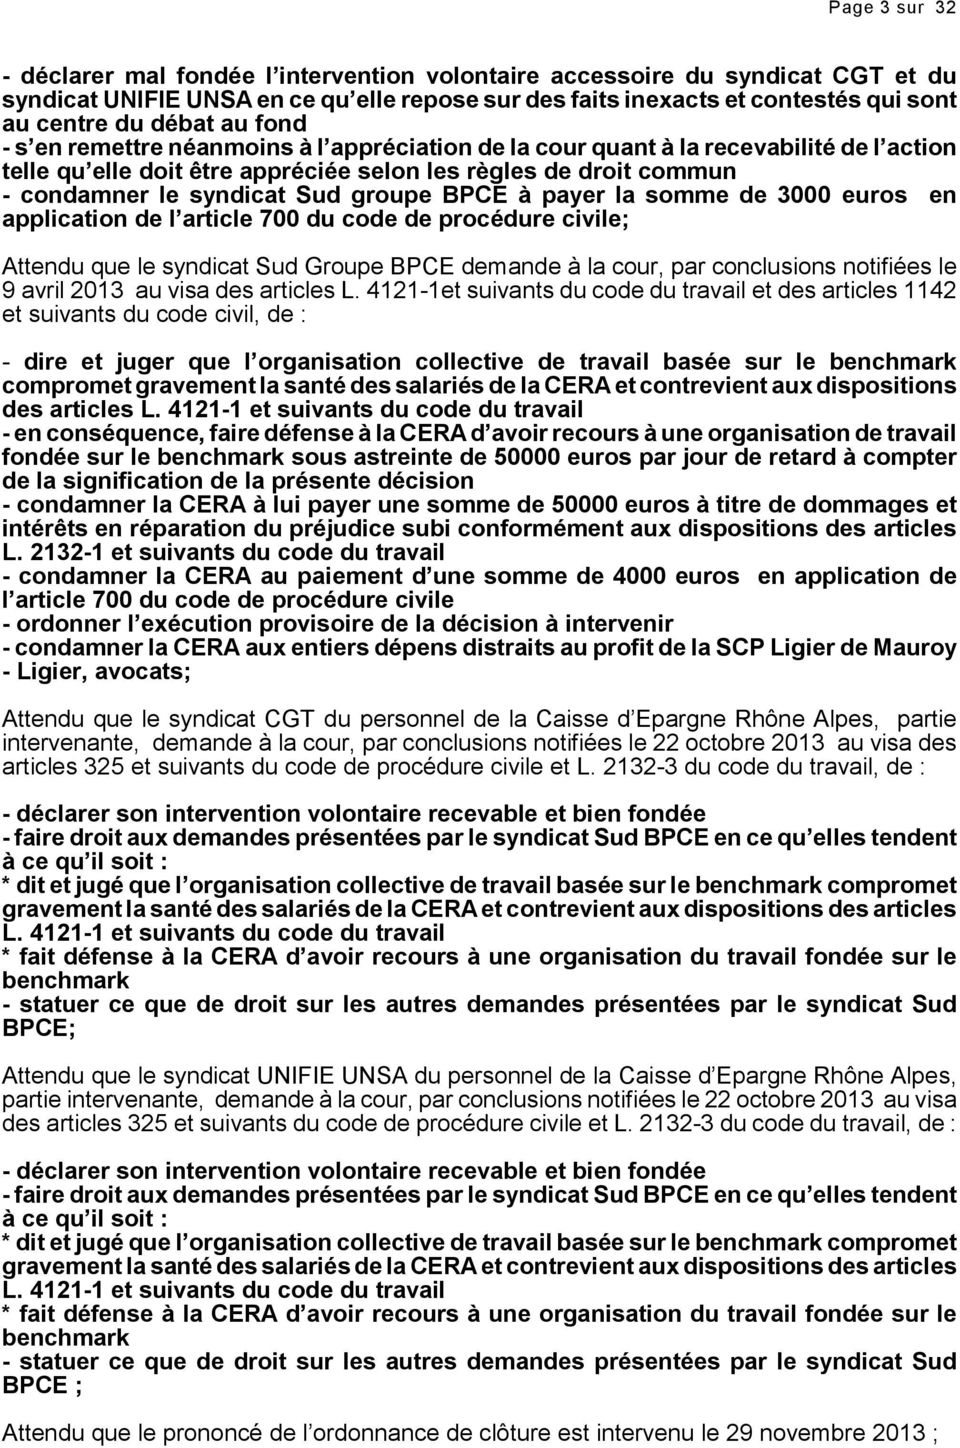 à pay la somme de 3000 euros en application de l article 700 du code de procédure civile; Attendu que le syndicat Sud Groupe BPCE demande à la cour, par conclusions notifiées le 9 avril 2013 au visa